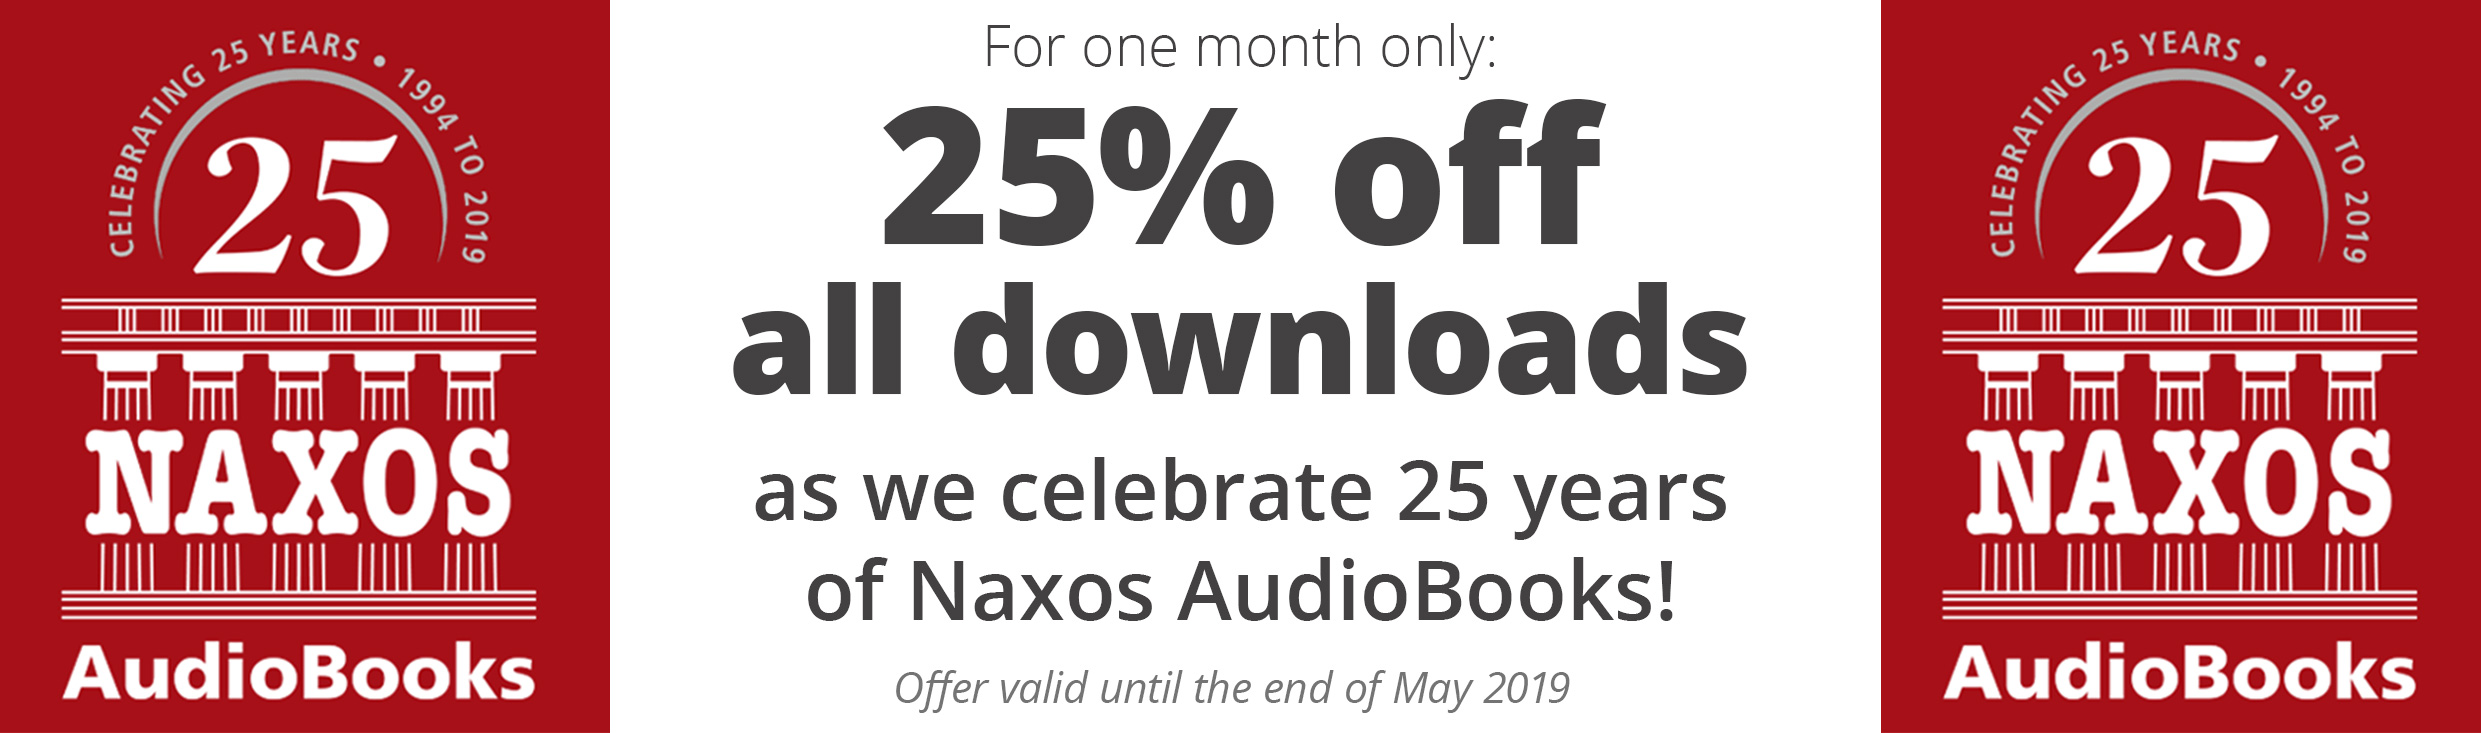 25% off all downloads!